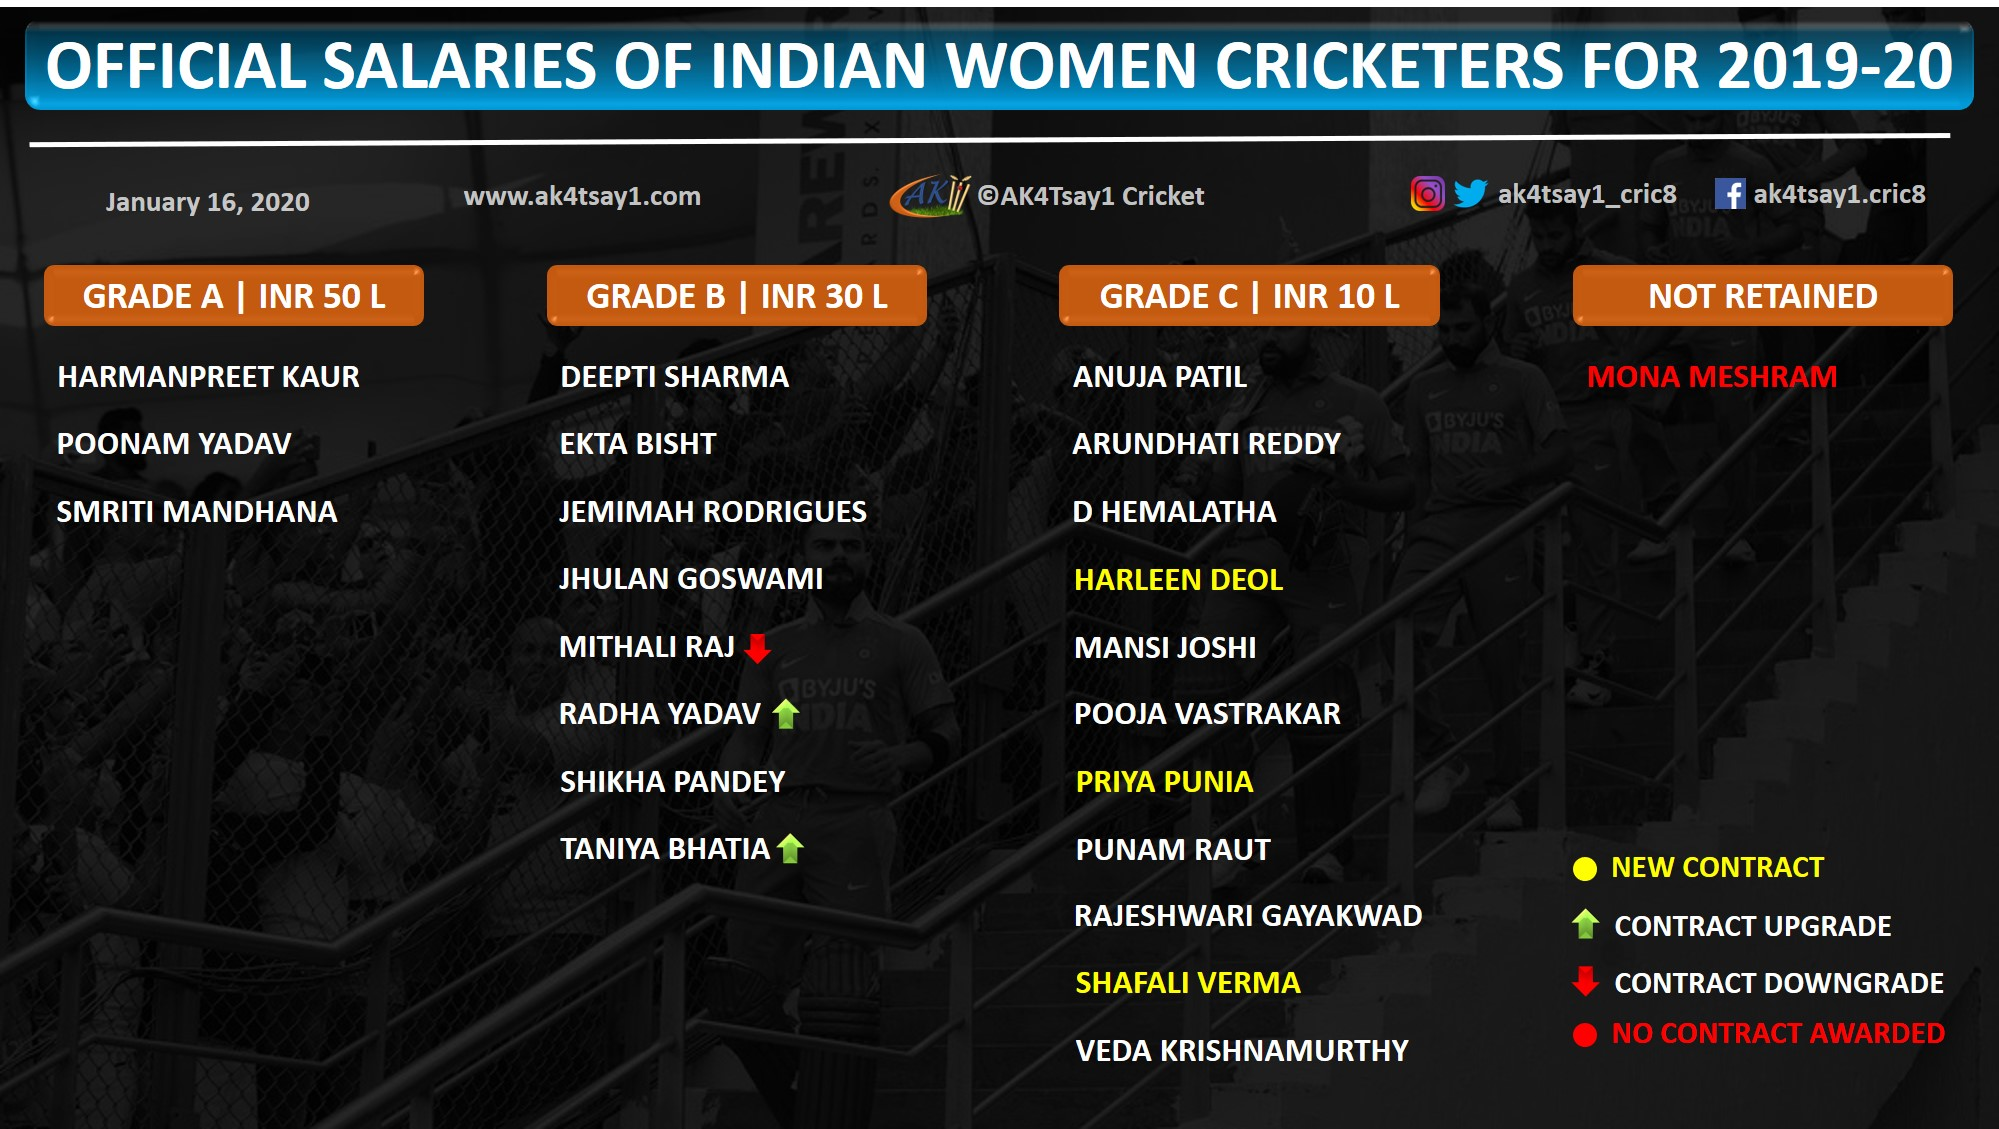 Official Salaries of Indian Women Cricketers for 2019-20